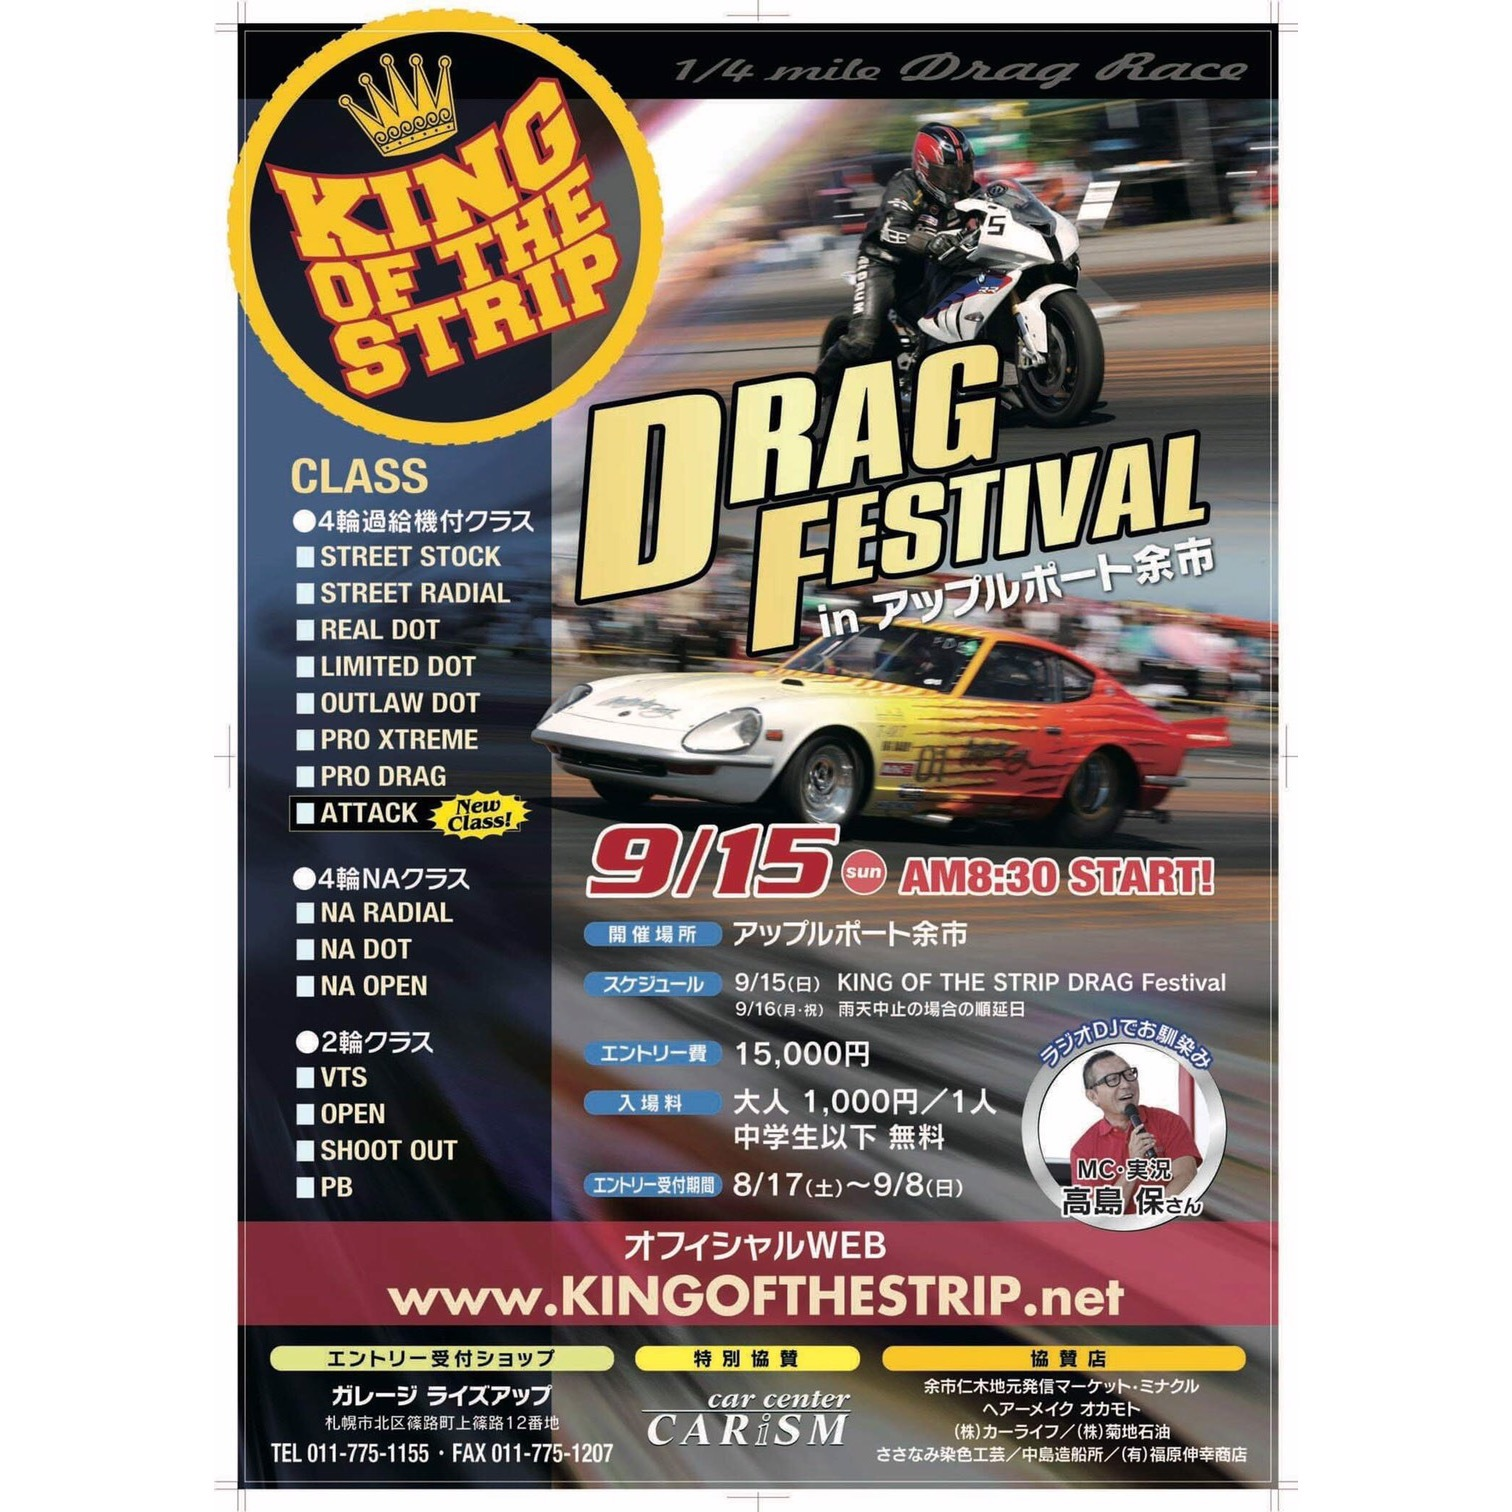 2019 KING OF HE STRIP DRAG FESTIVAL 20190915エントリー間もなく締切です!!_c0226202_18450380.jpeg